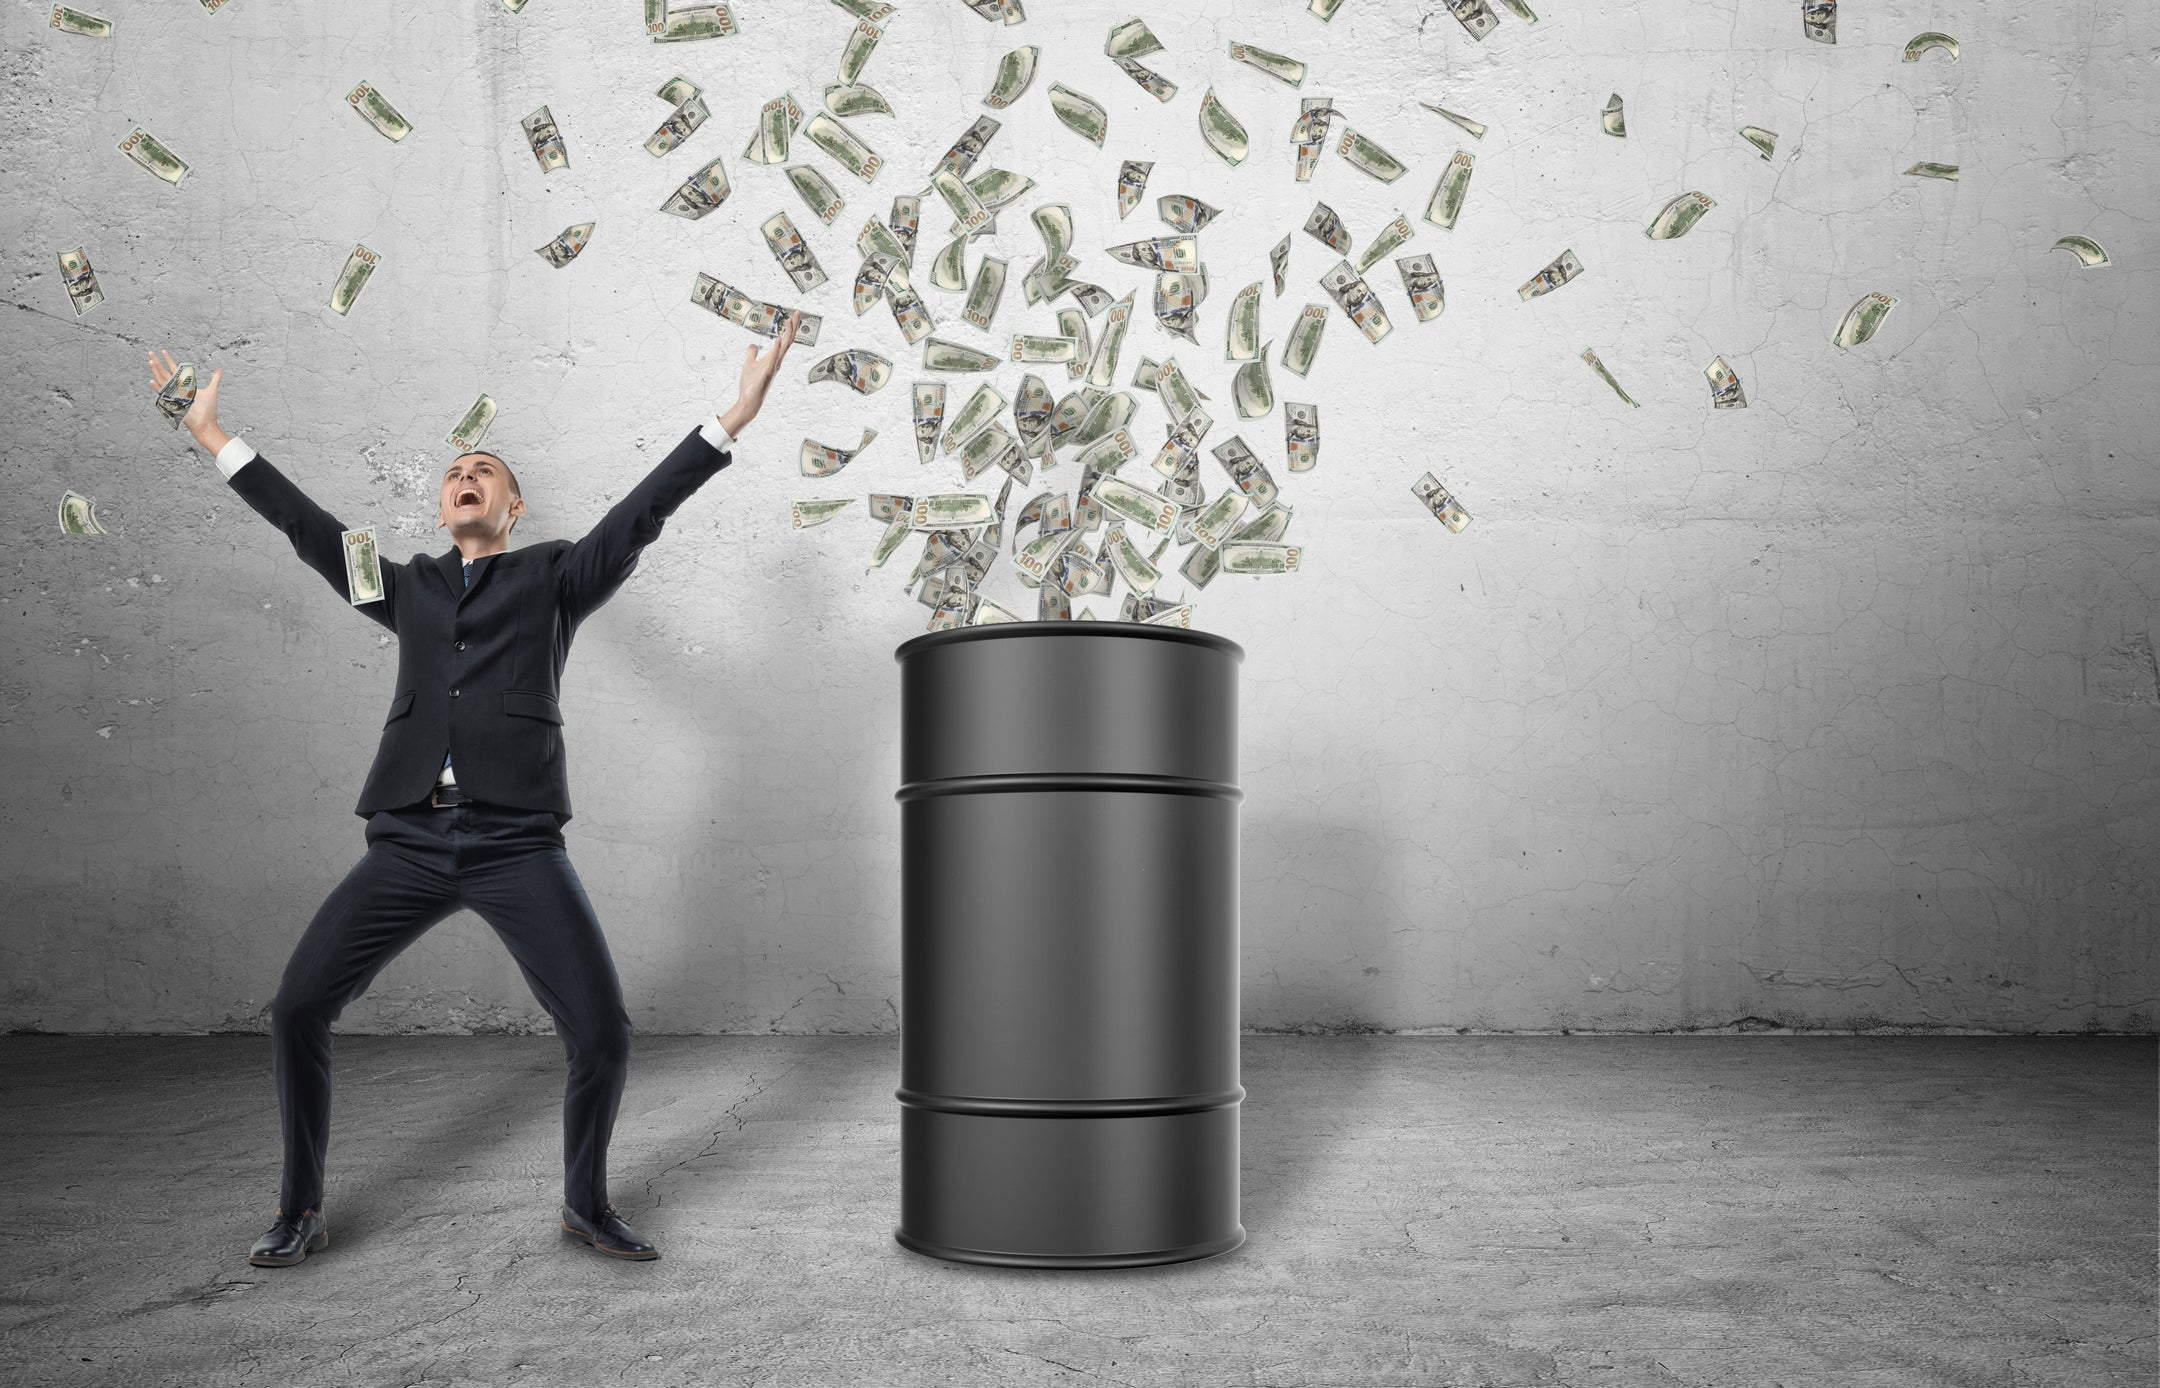 A barrel on a gray floor with money bursting out of it, with a happy businessman celebrating next to it